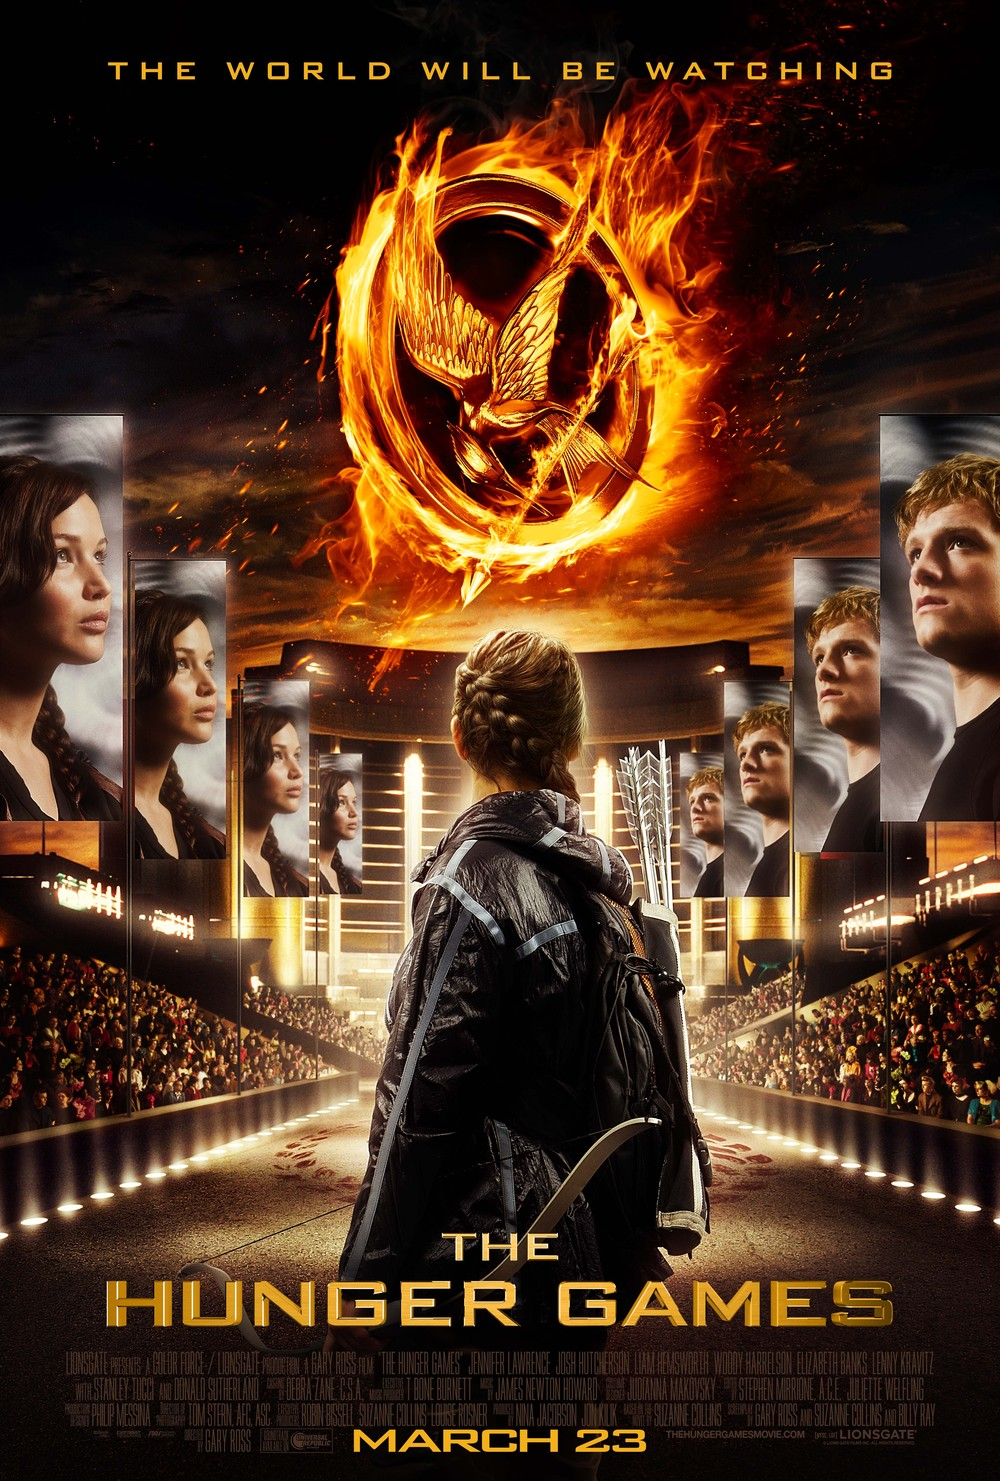 the-hunger-games-poster1.jpg